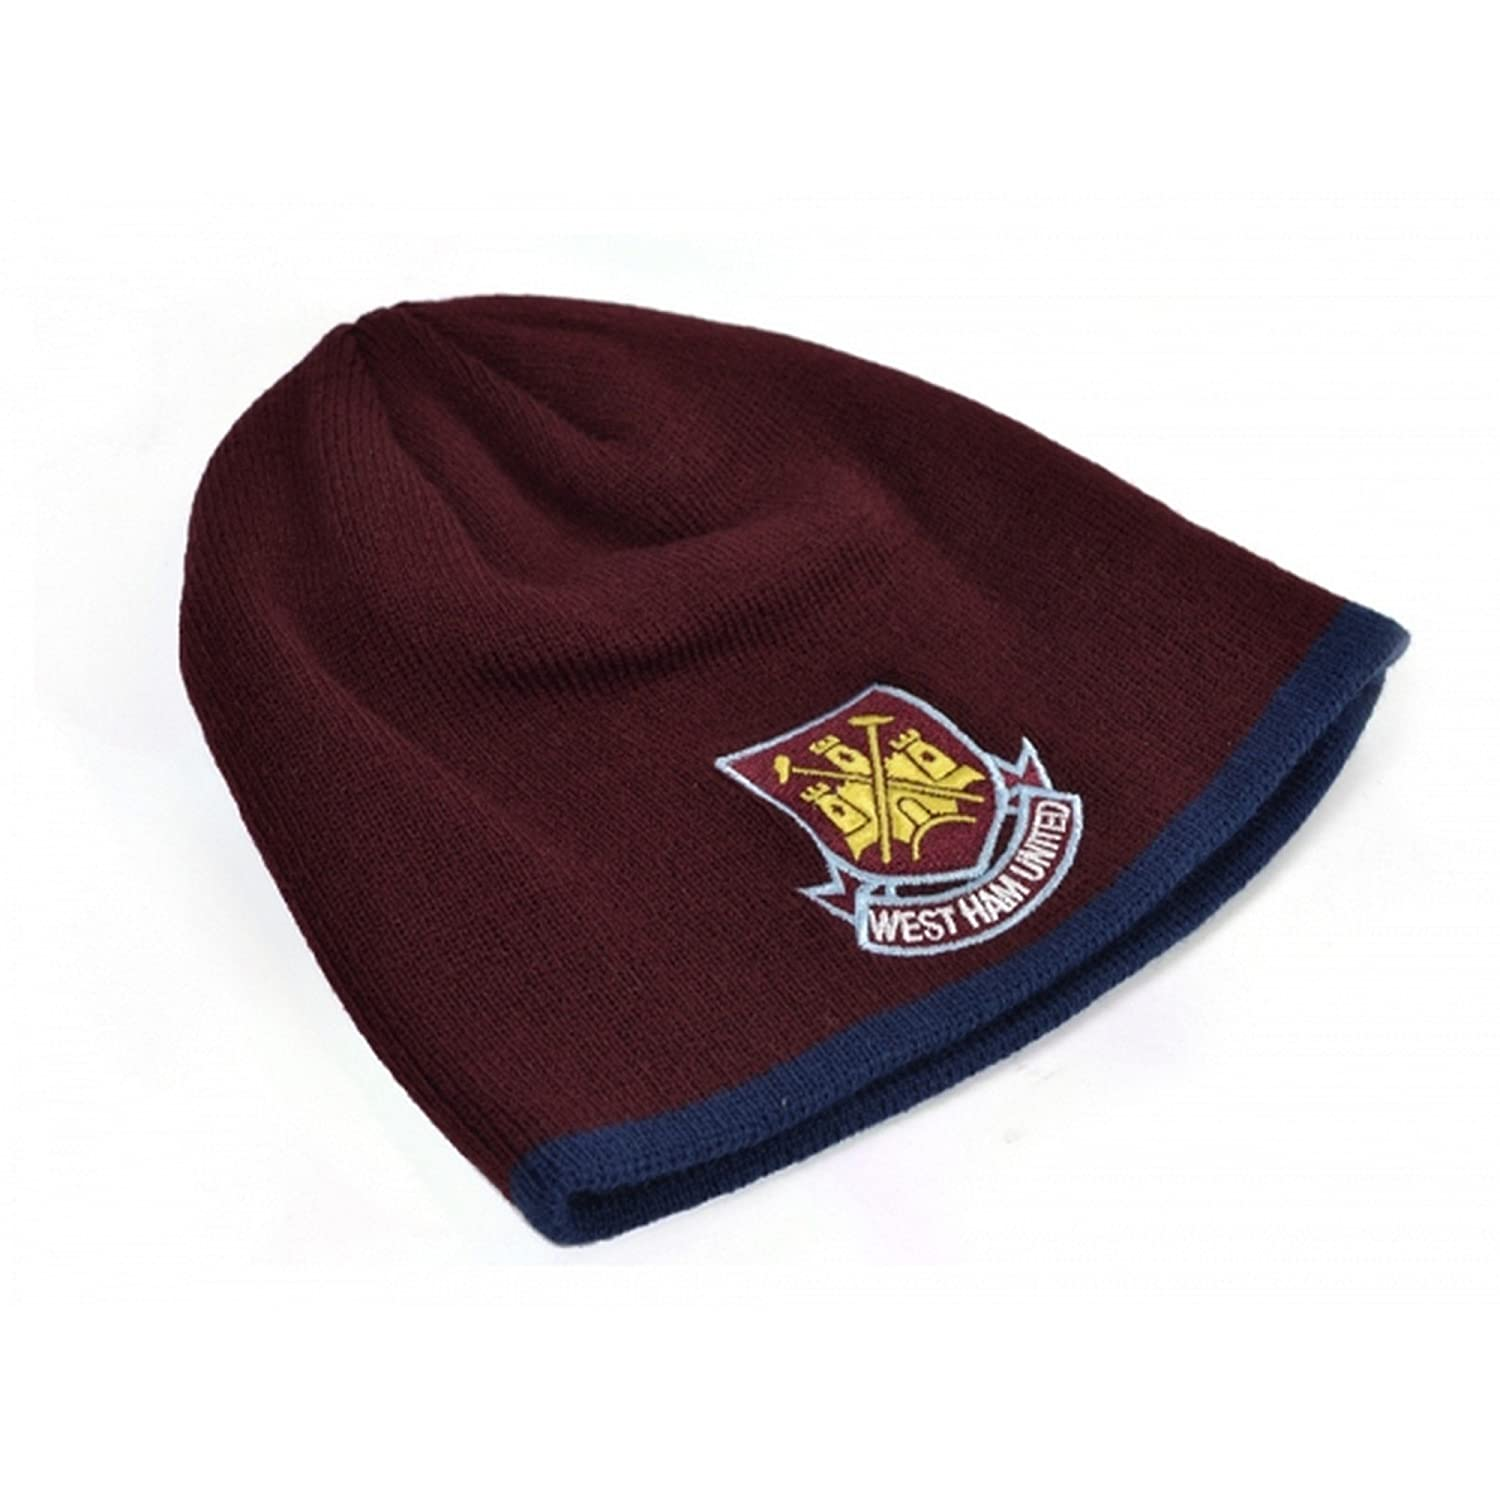 West Ham FC Official Childrens/Kids Football Classic Crest Knitted Beanie Hat UTBS411_1